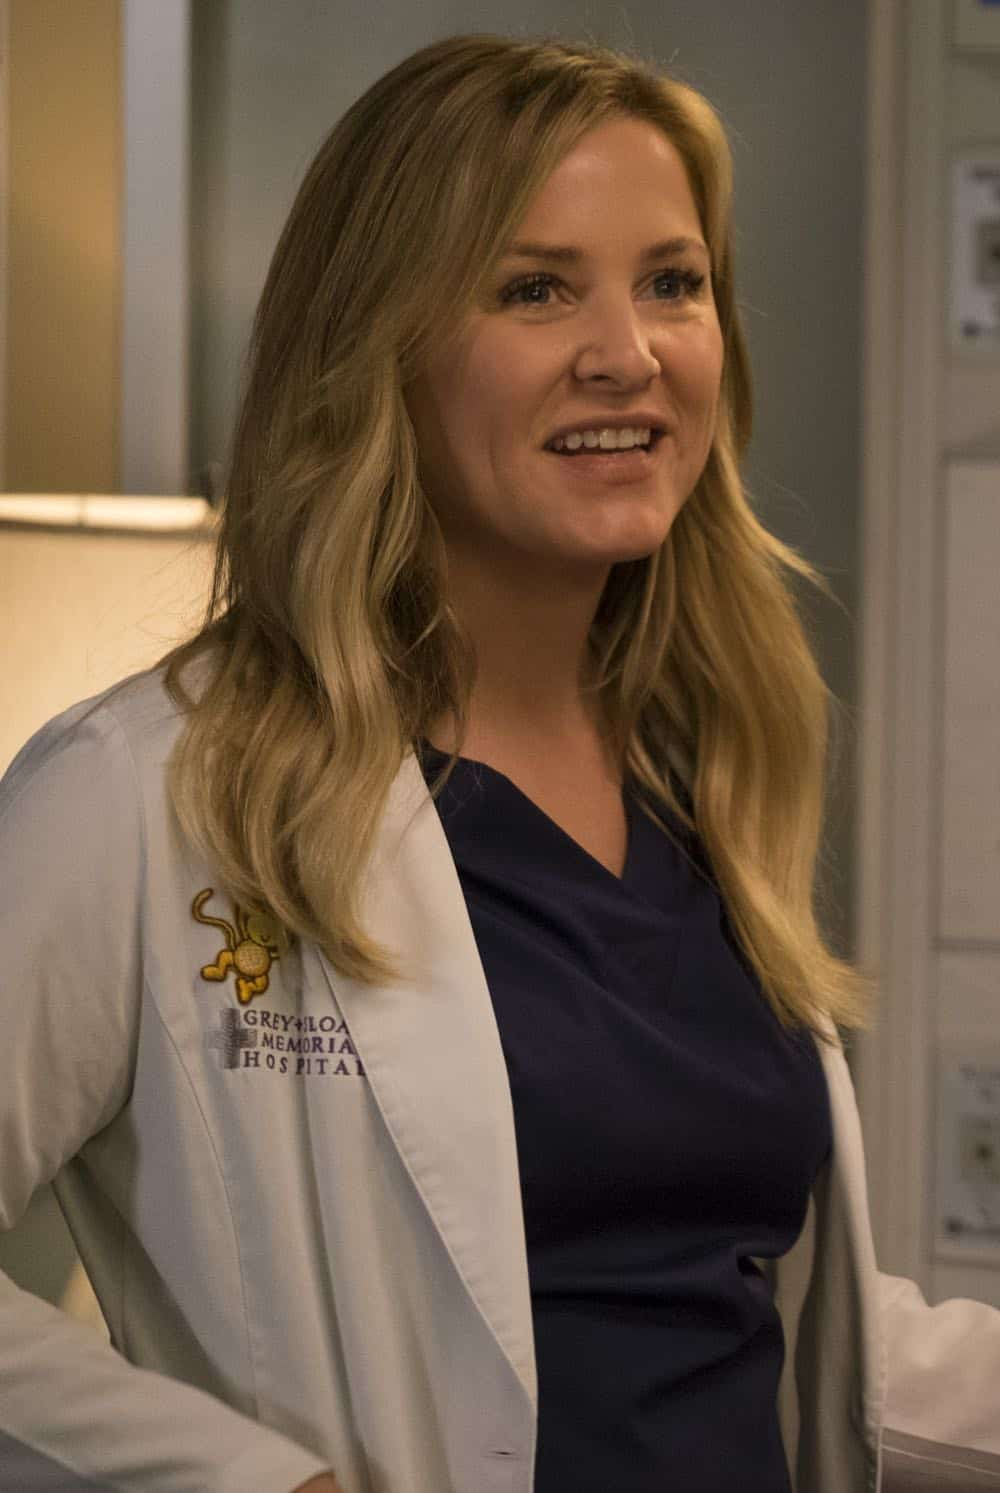 Greys Anatomy Episode 22 Season 14 Fight For Your Mind 24